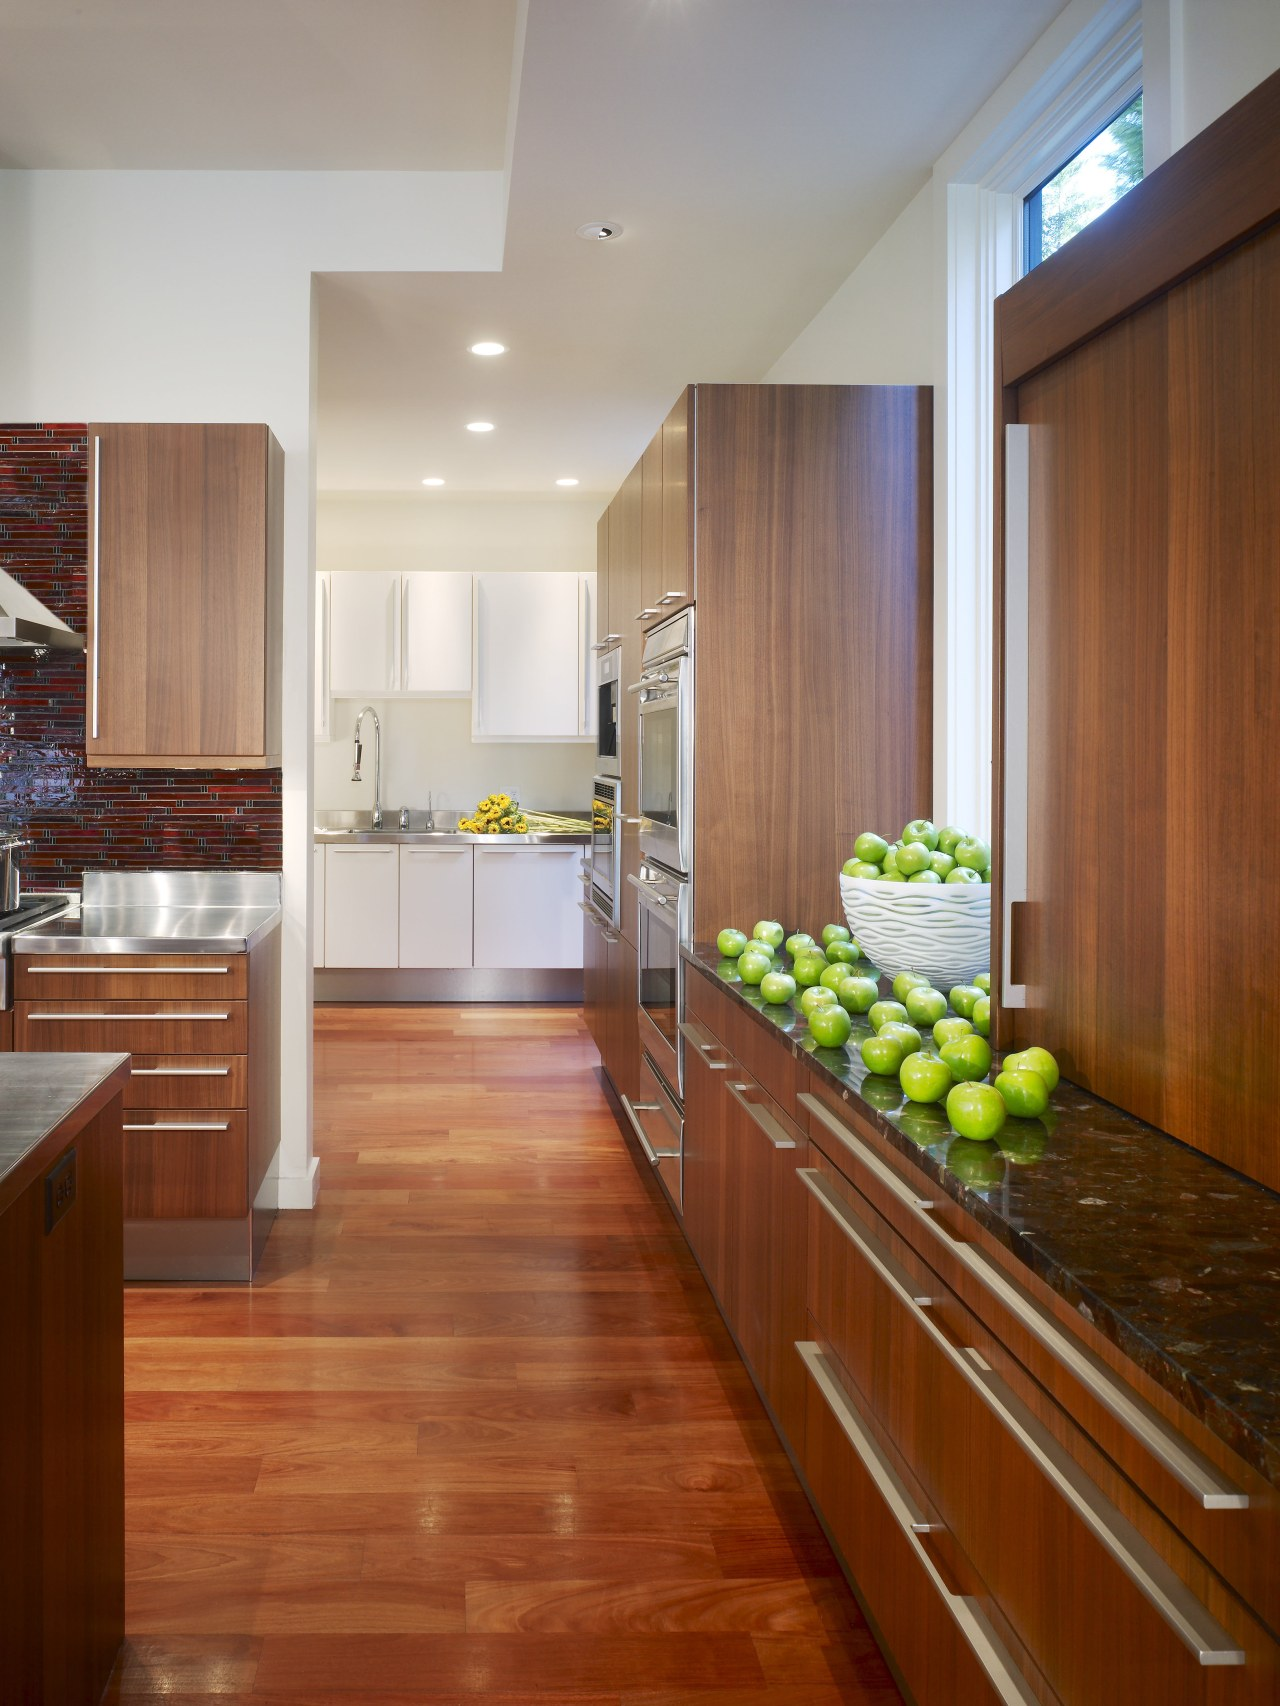 View of a kitchen which combines commerical touches cabinetry, countertop, floor, flooring, hardwood, interior design, kitchen, laminate flooring, real estate, room, wood, wood flooring, brown, gray